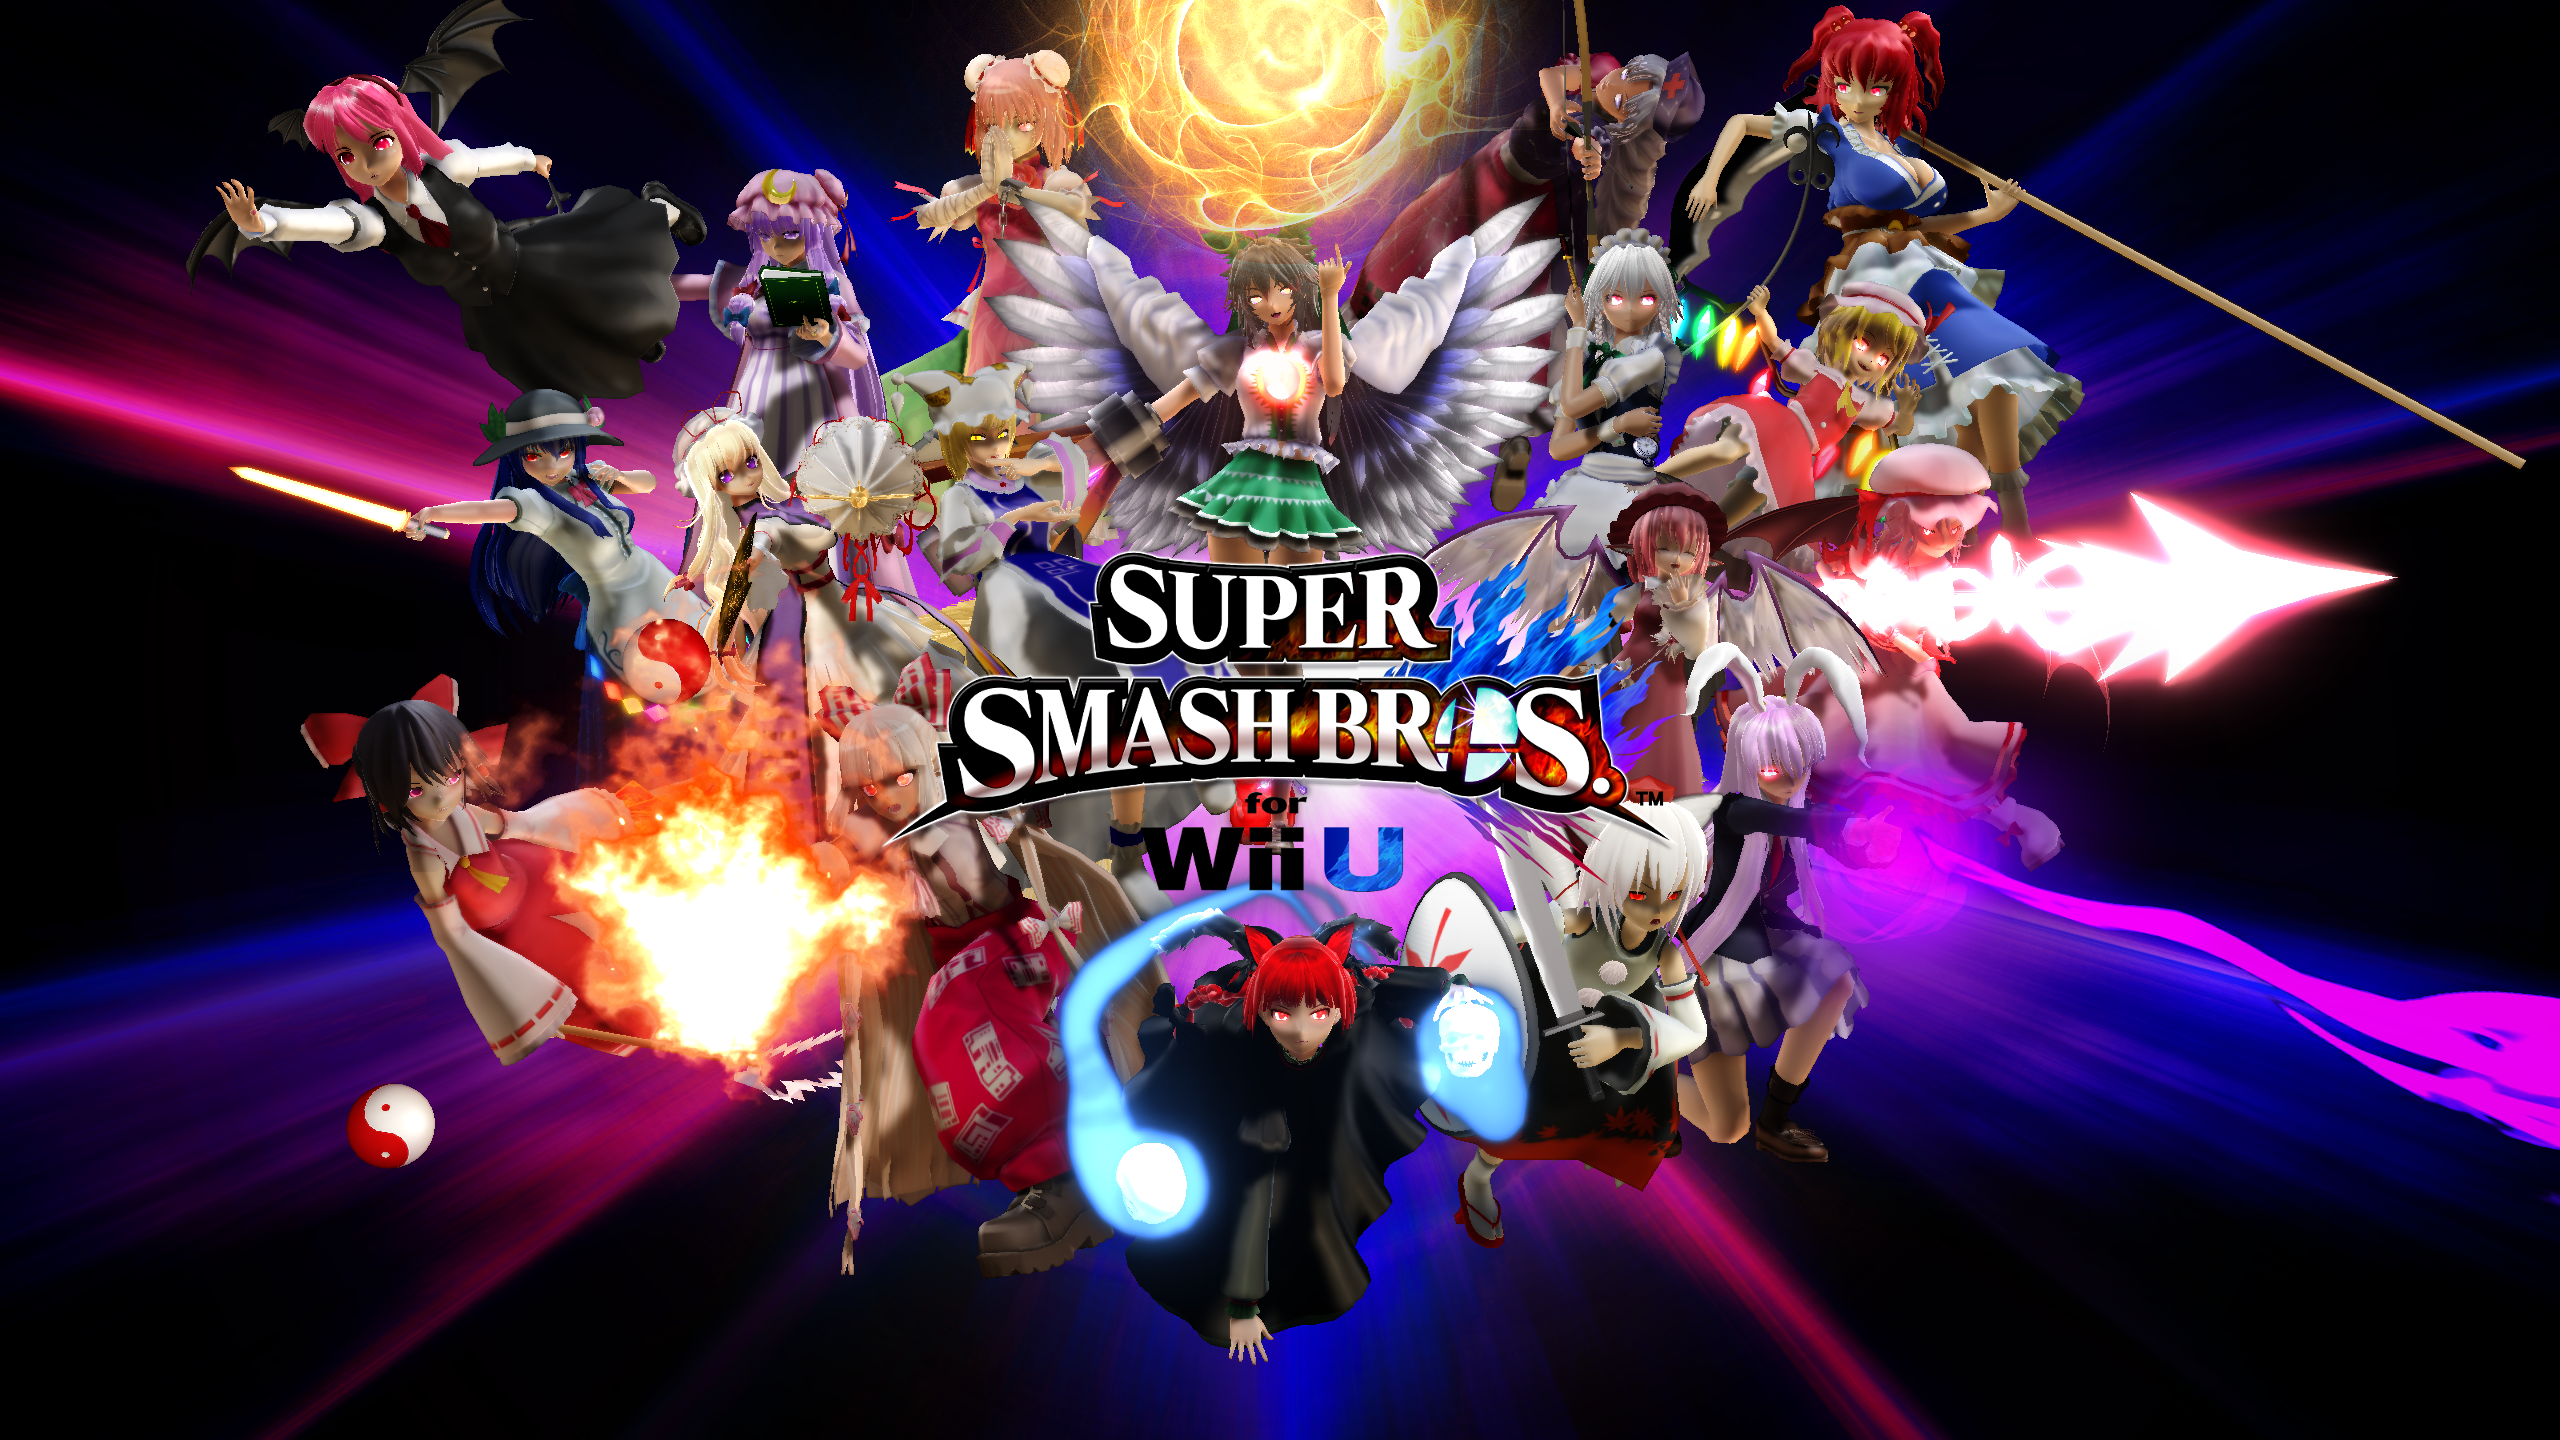 MMD Touhou Smash Bros 4 Title Ver.2 by headstert